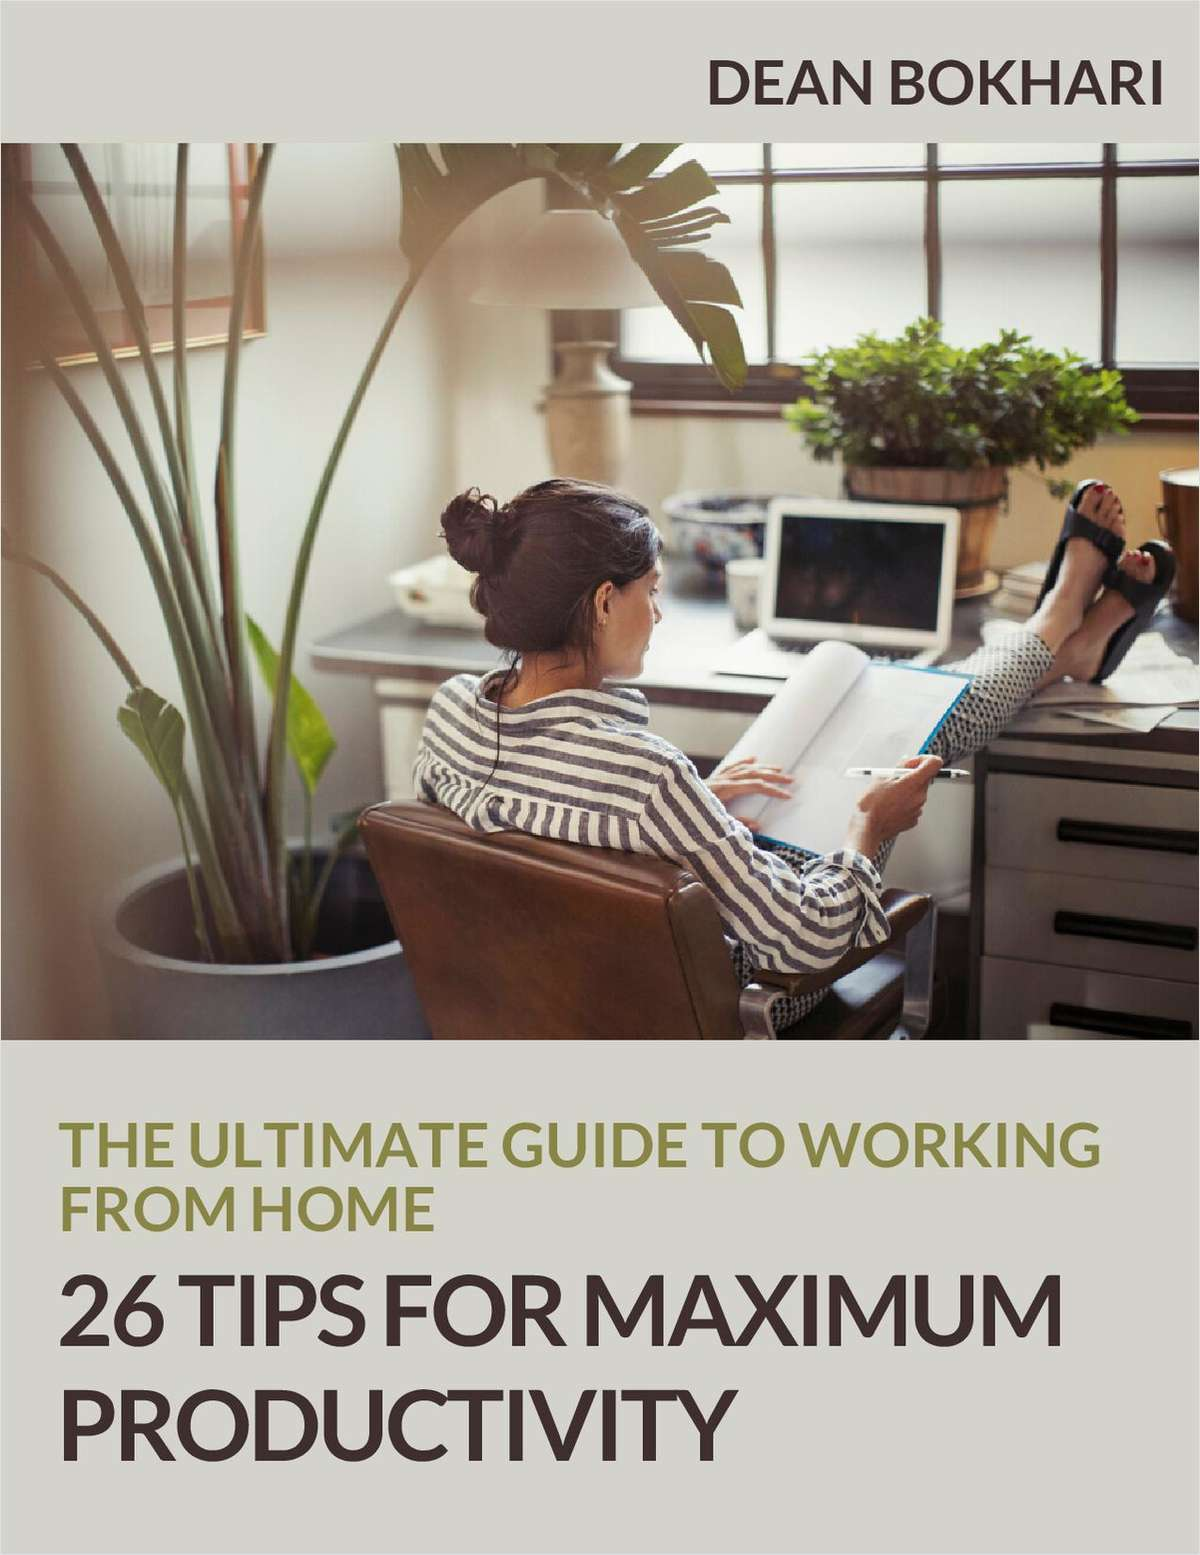 The Ultimate Guide to Working from Home: 26 Tips for Maximum Productivity